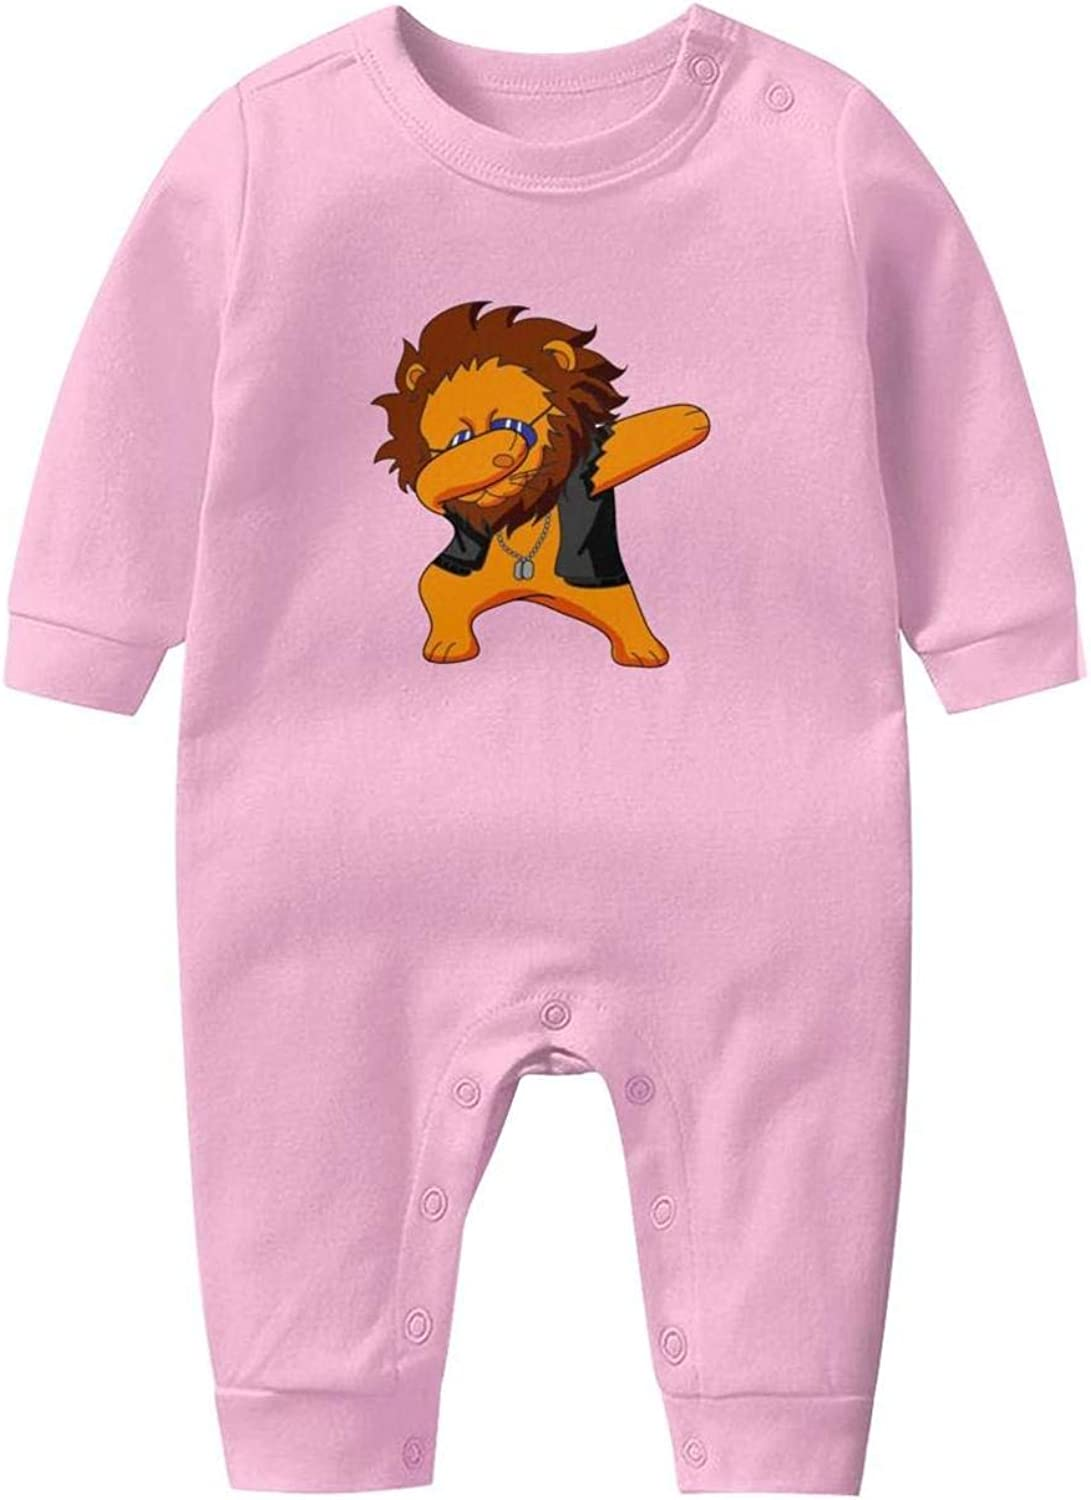 Lion King of Pop Kids Boys Girls Classical Baby Crawling Suit Lone-Sleeved Romper Bodysuit